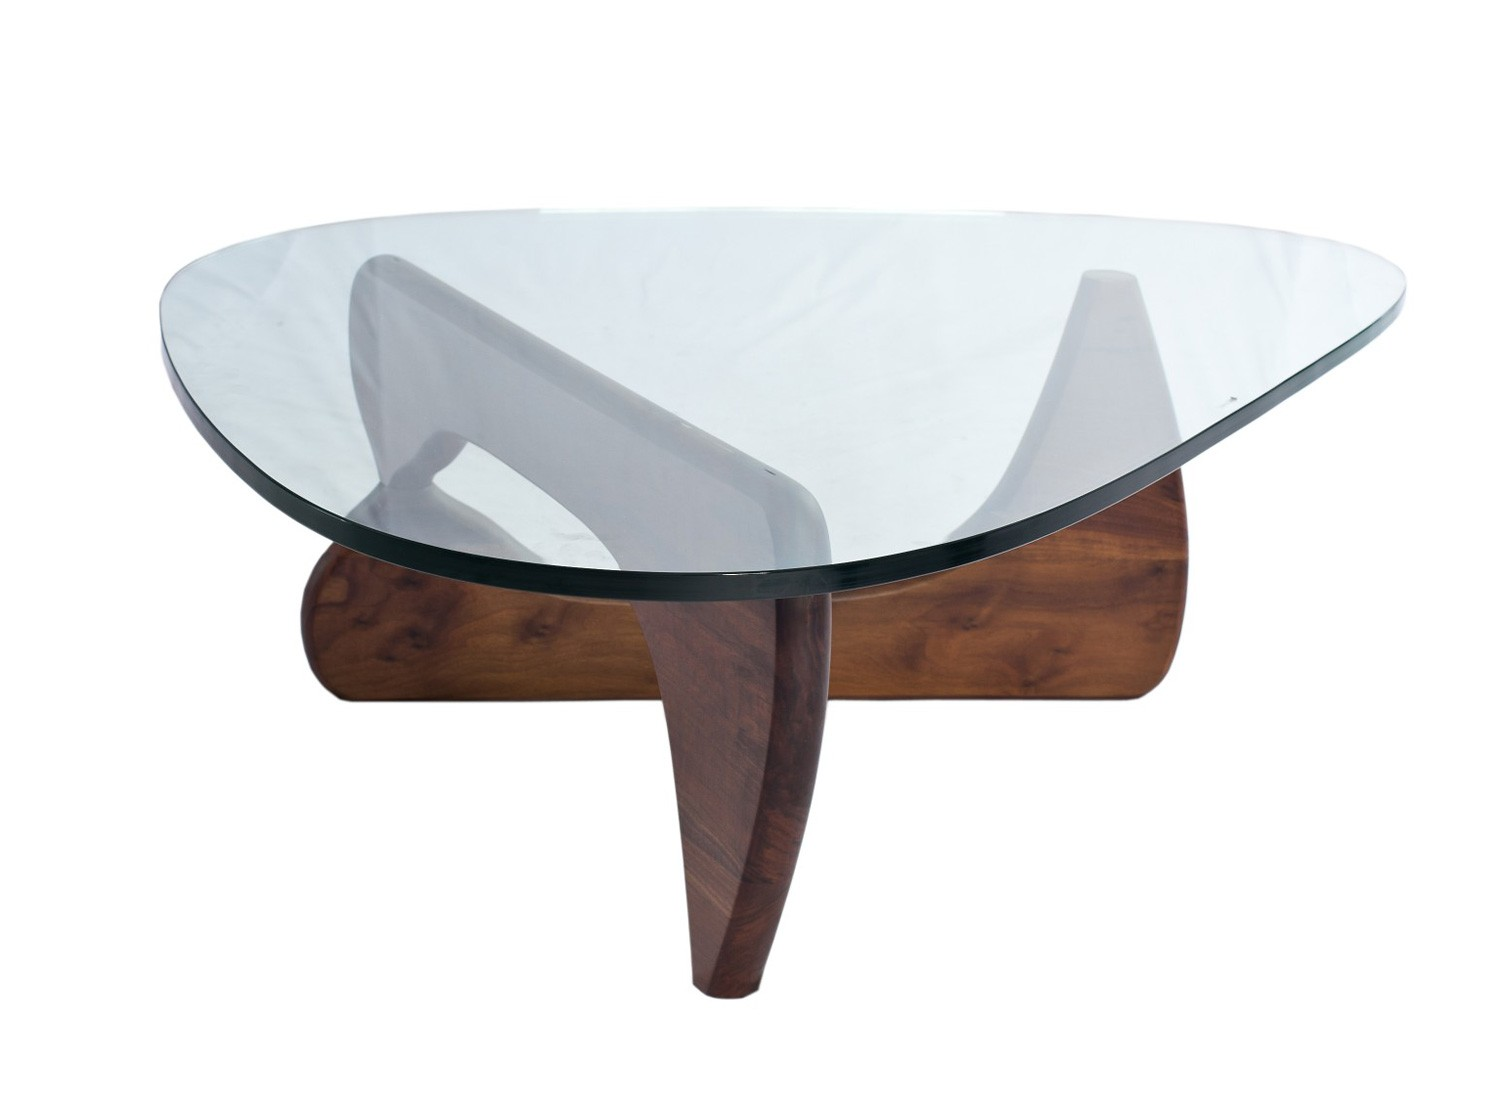 Replica Noguchi Coffee Table